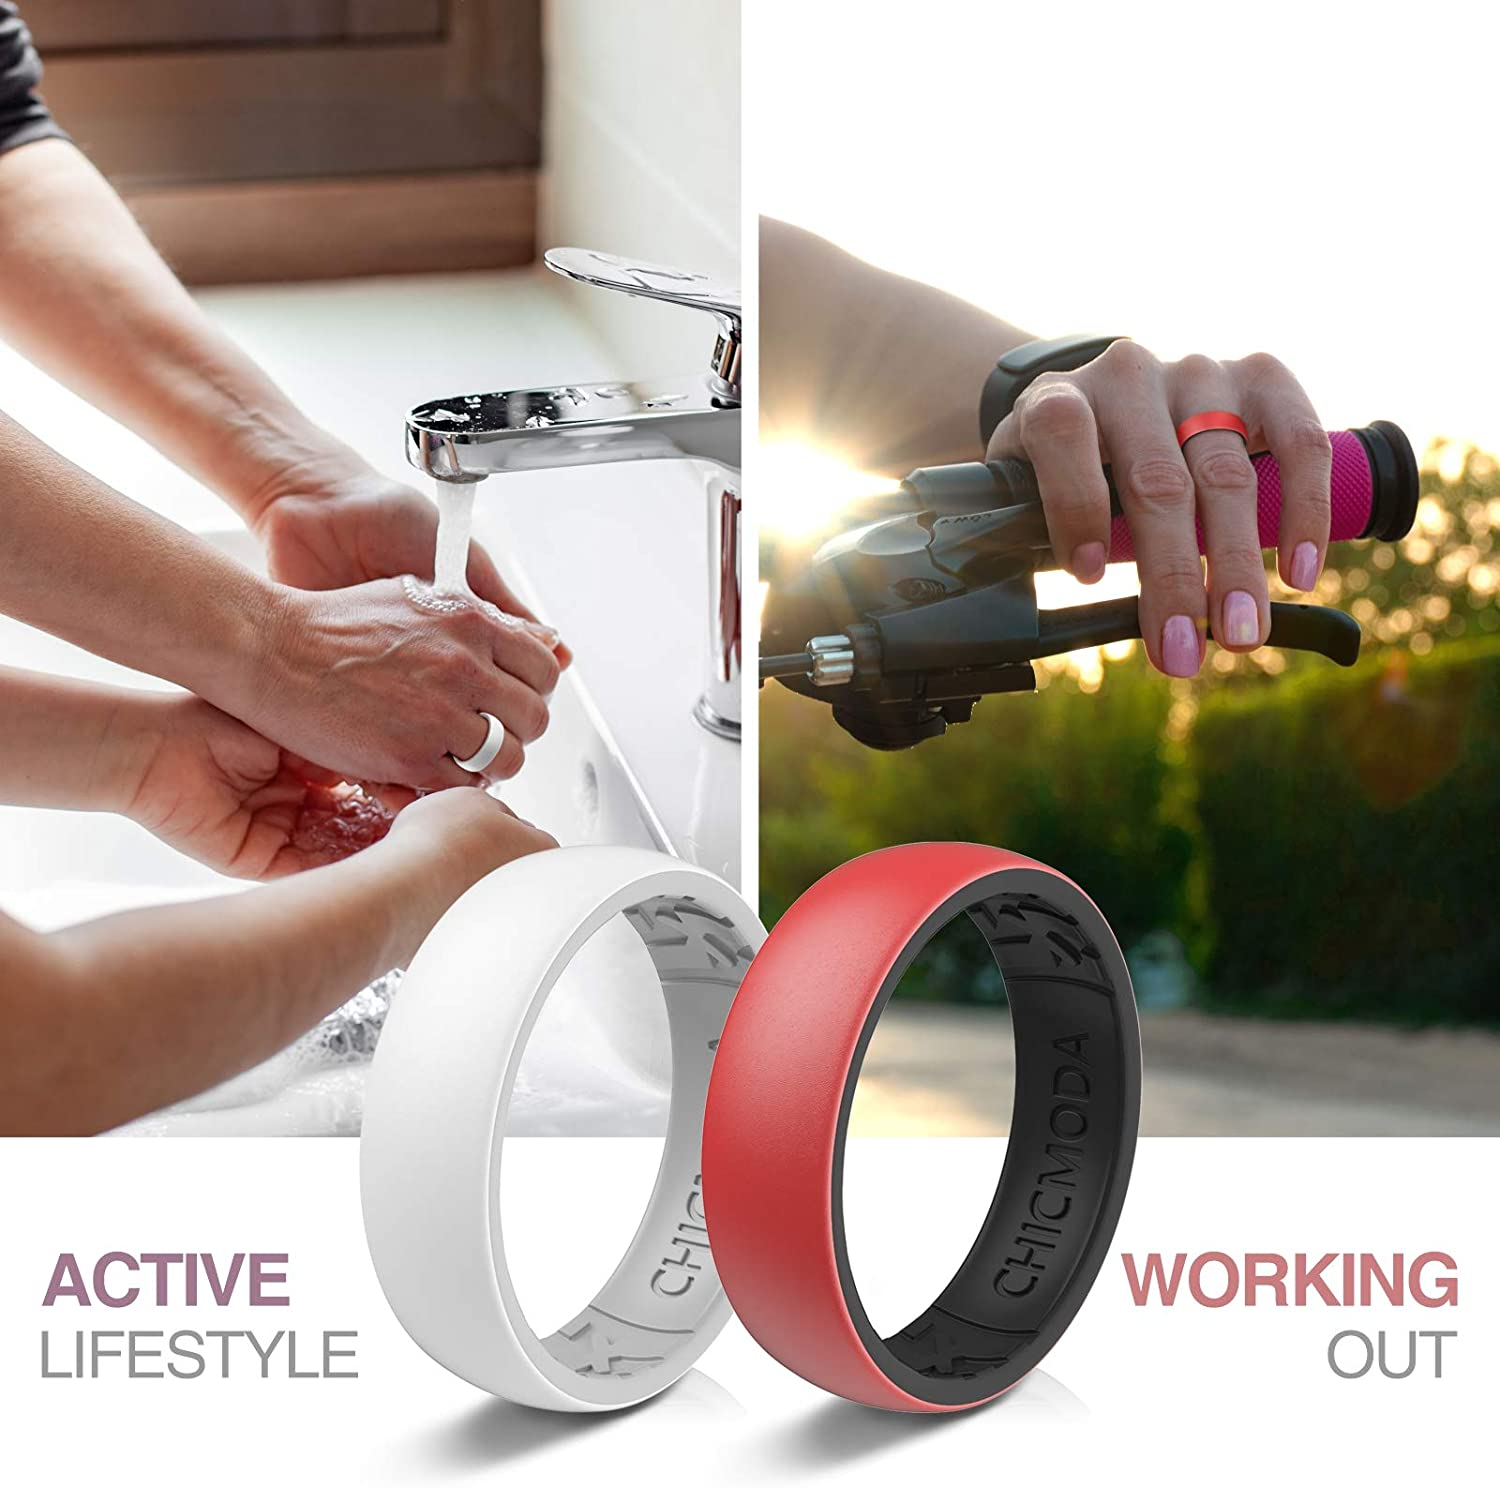 CHICMODA Silicone Rings Women Mens,Mens Women Silicone Wedding Rings,8 Colorful Rings,Breathable Design,Fashion,Lightweight,Durable,Comfortable,Safe for Fitness Workout,6.8mm Wide2.0mm Thick,Size 5-12